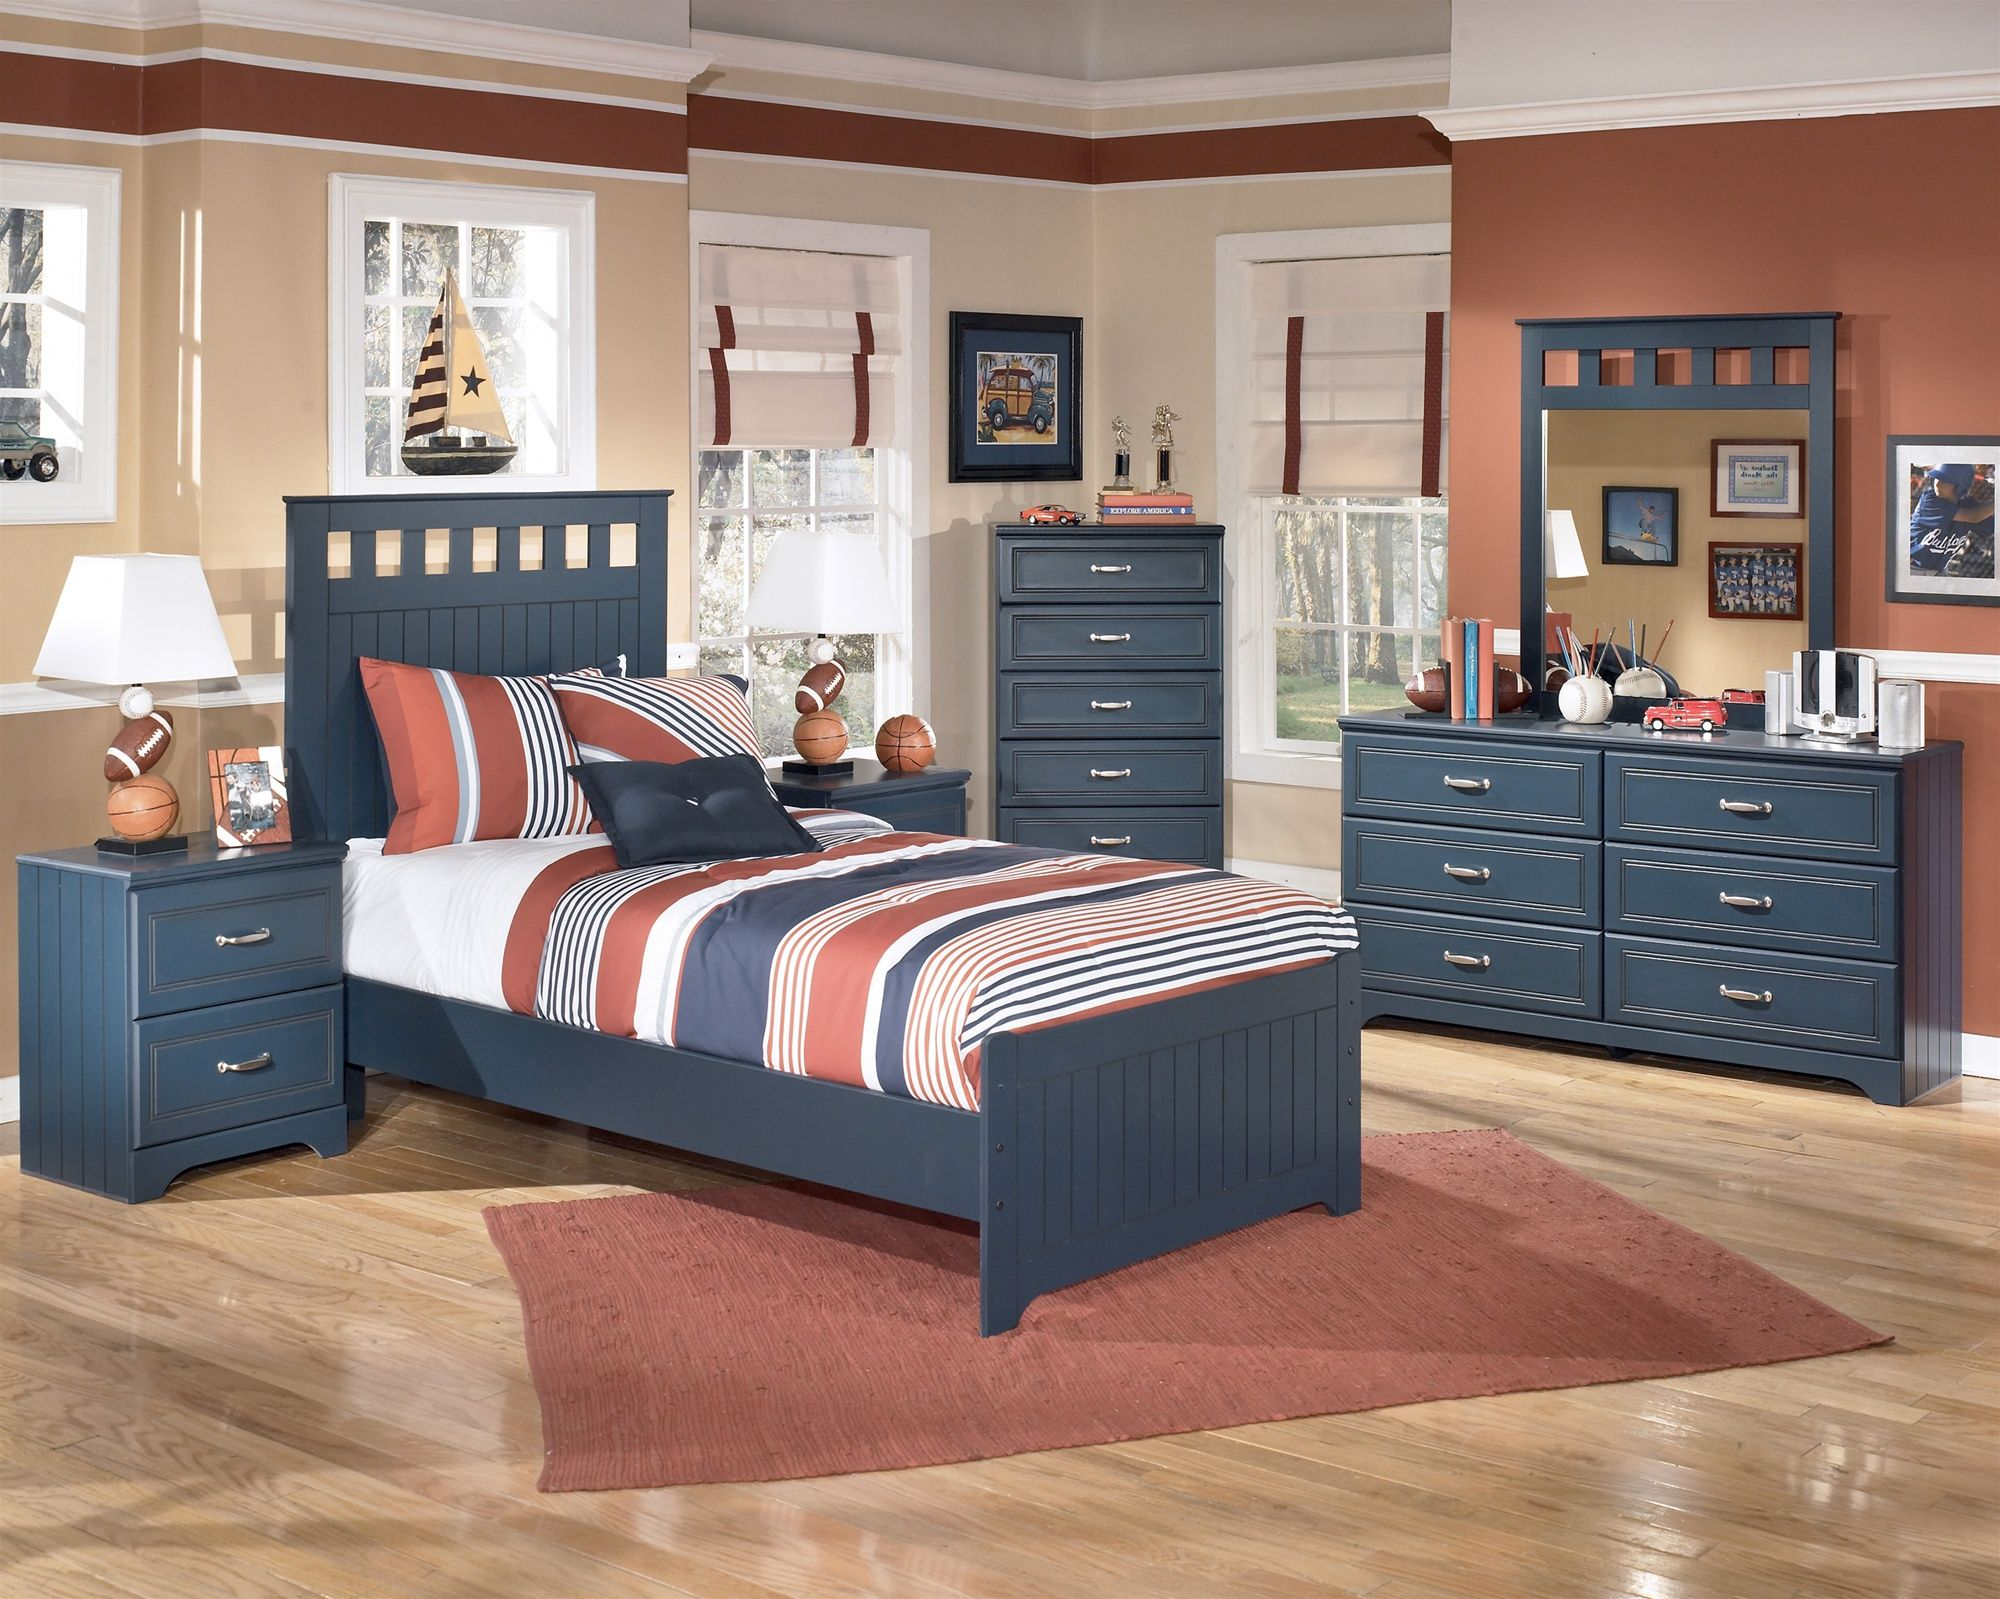 Captivating Blue Themed Twin Bedroom Furnitures Set With Wooden Bed And Bedside Table And Drawer And Dres Cheap Bedroom Furniture Kids Bedroom Sets Bedroom Set